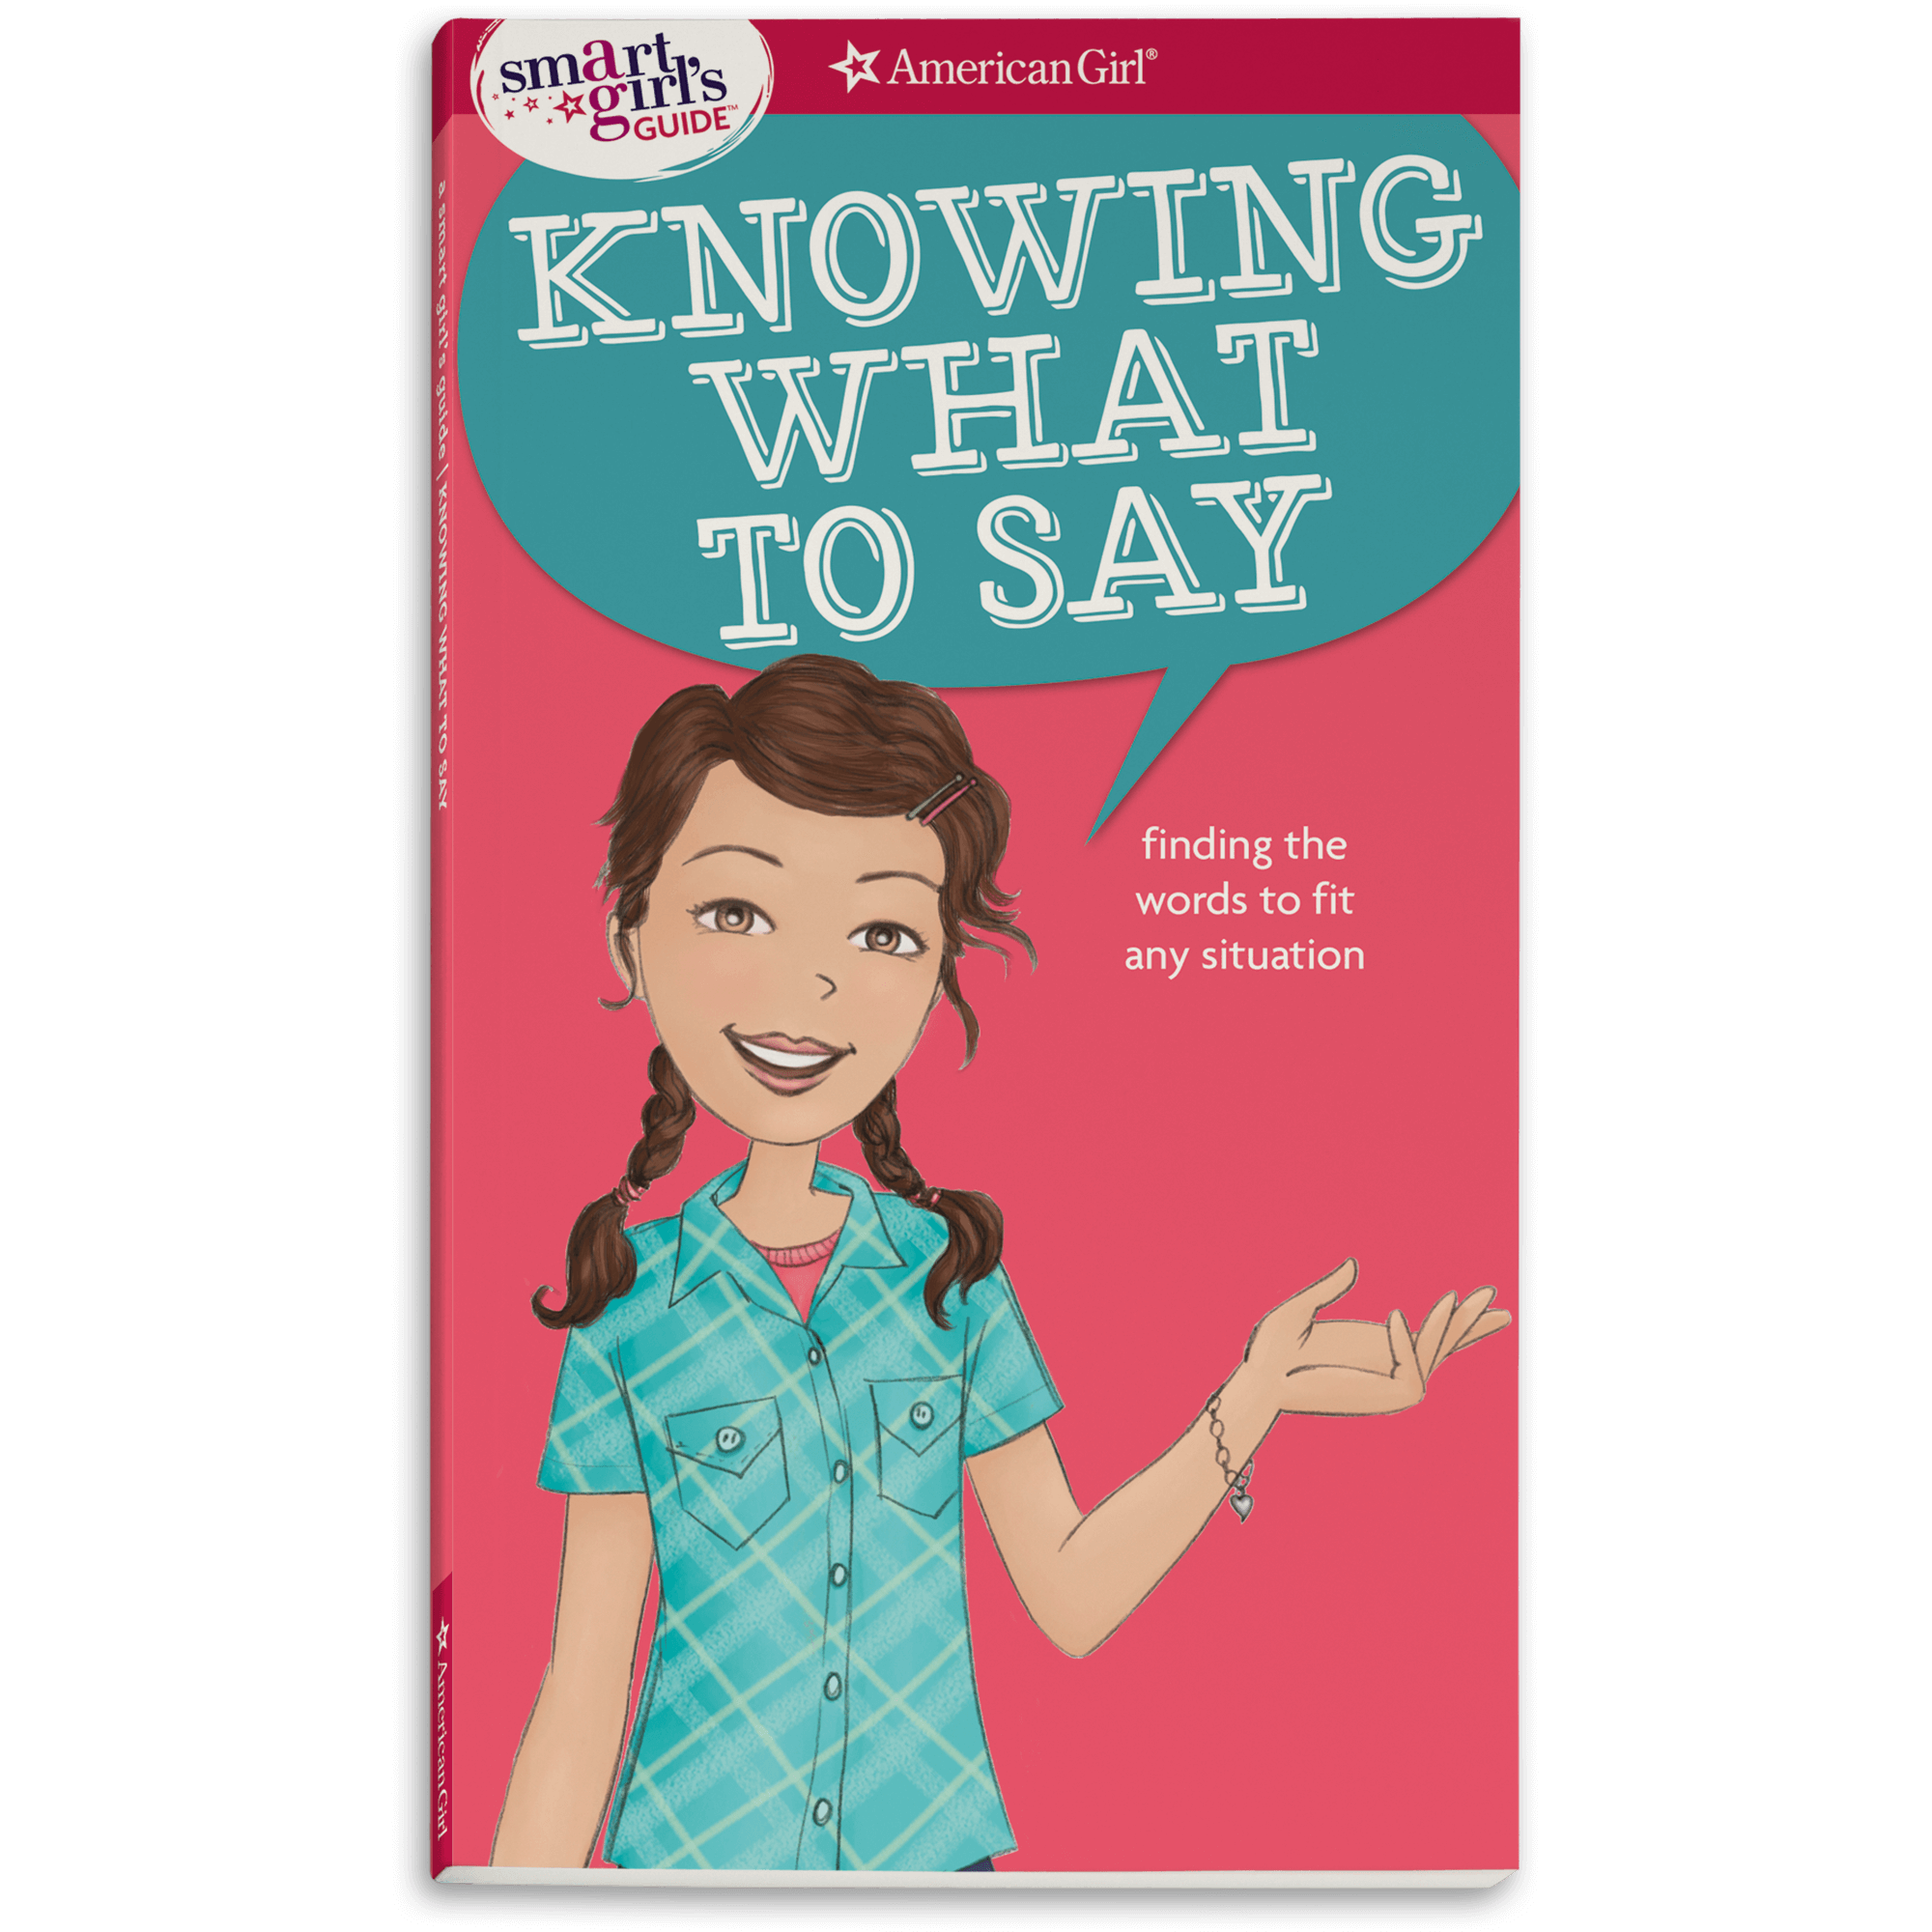 New! Smart Girl's Guide:  Knowing What to Say